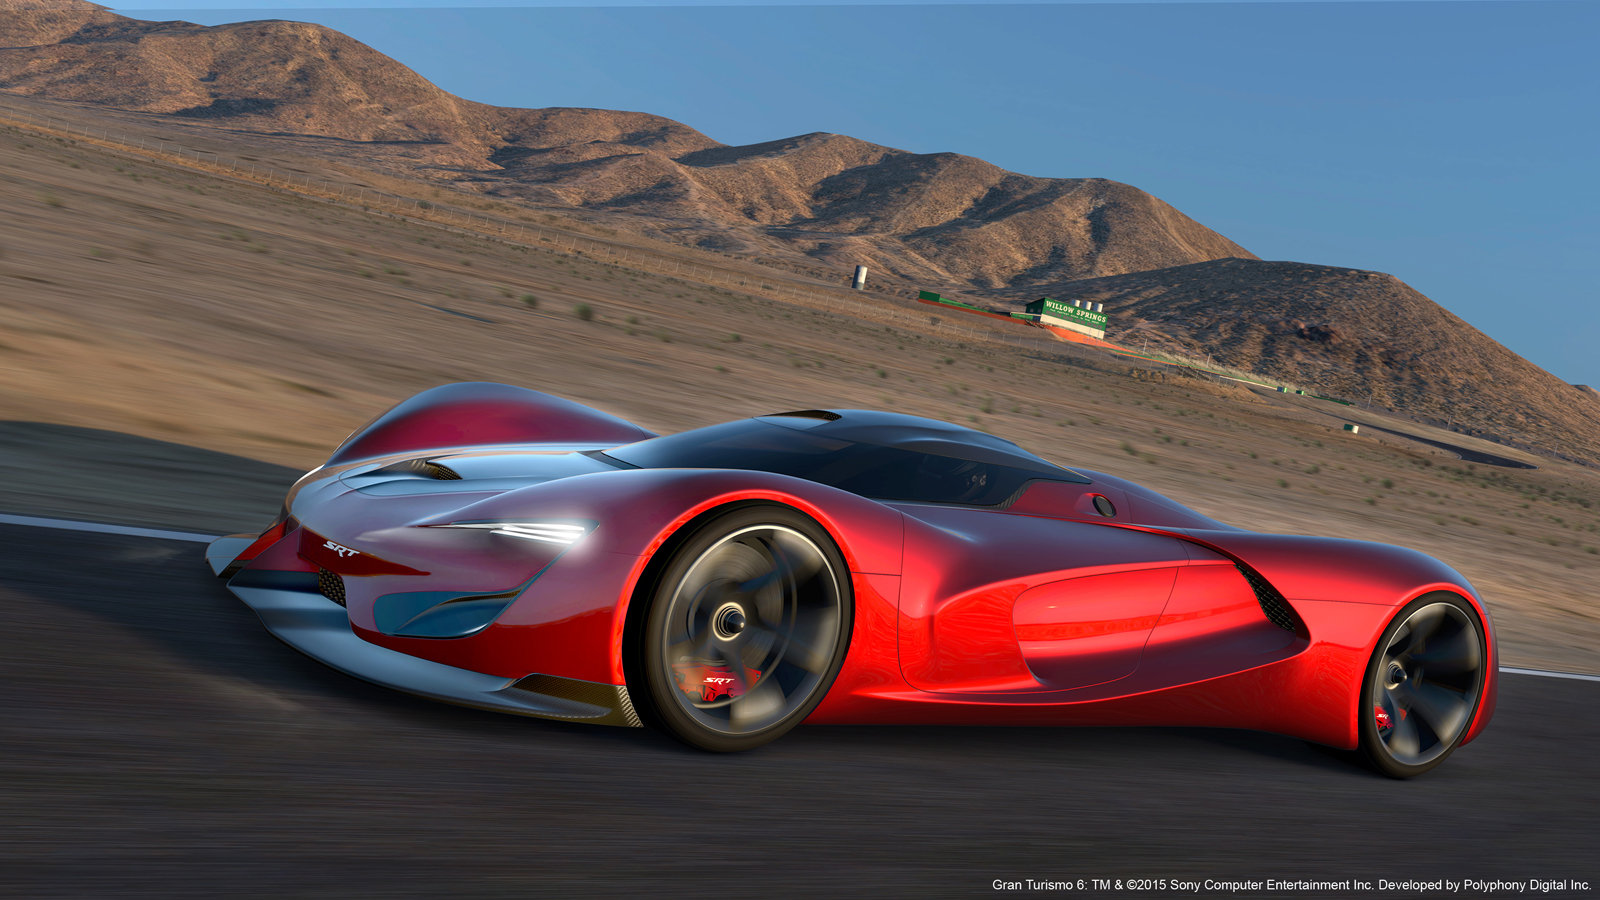 The 2,590-hp SRT Tomahawk Vision Gran Turismo is the future – now